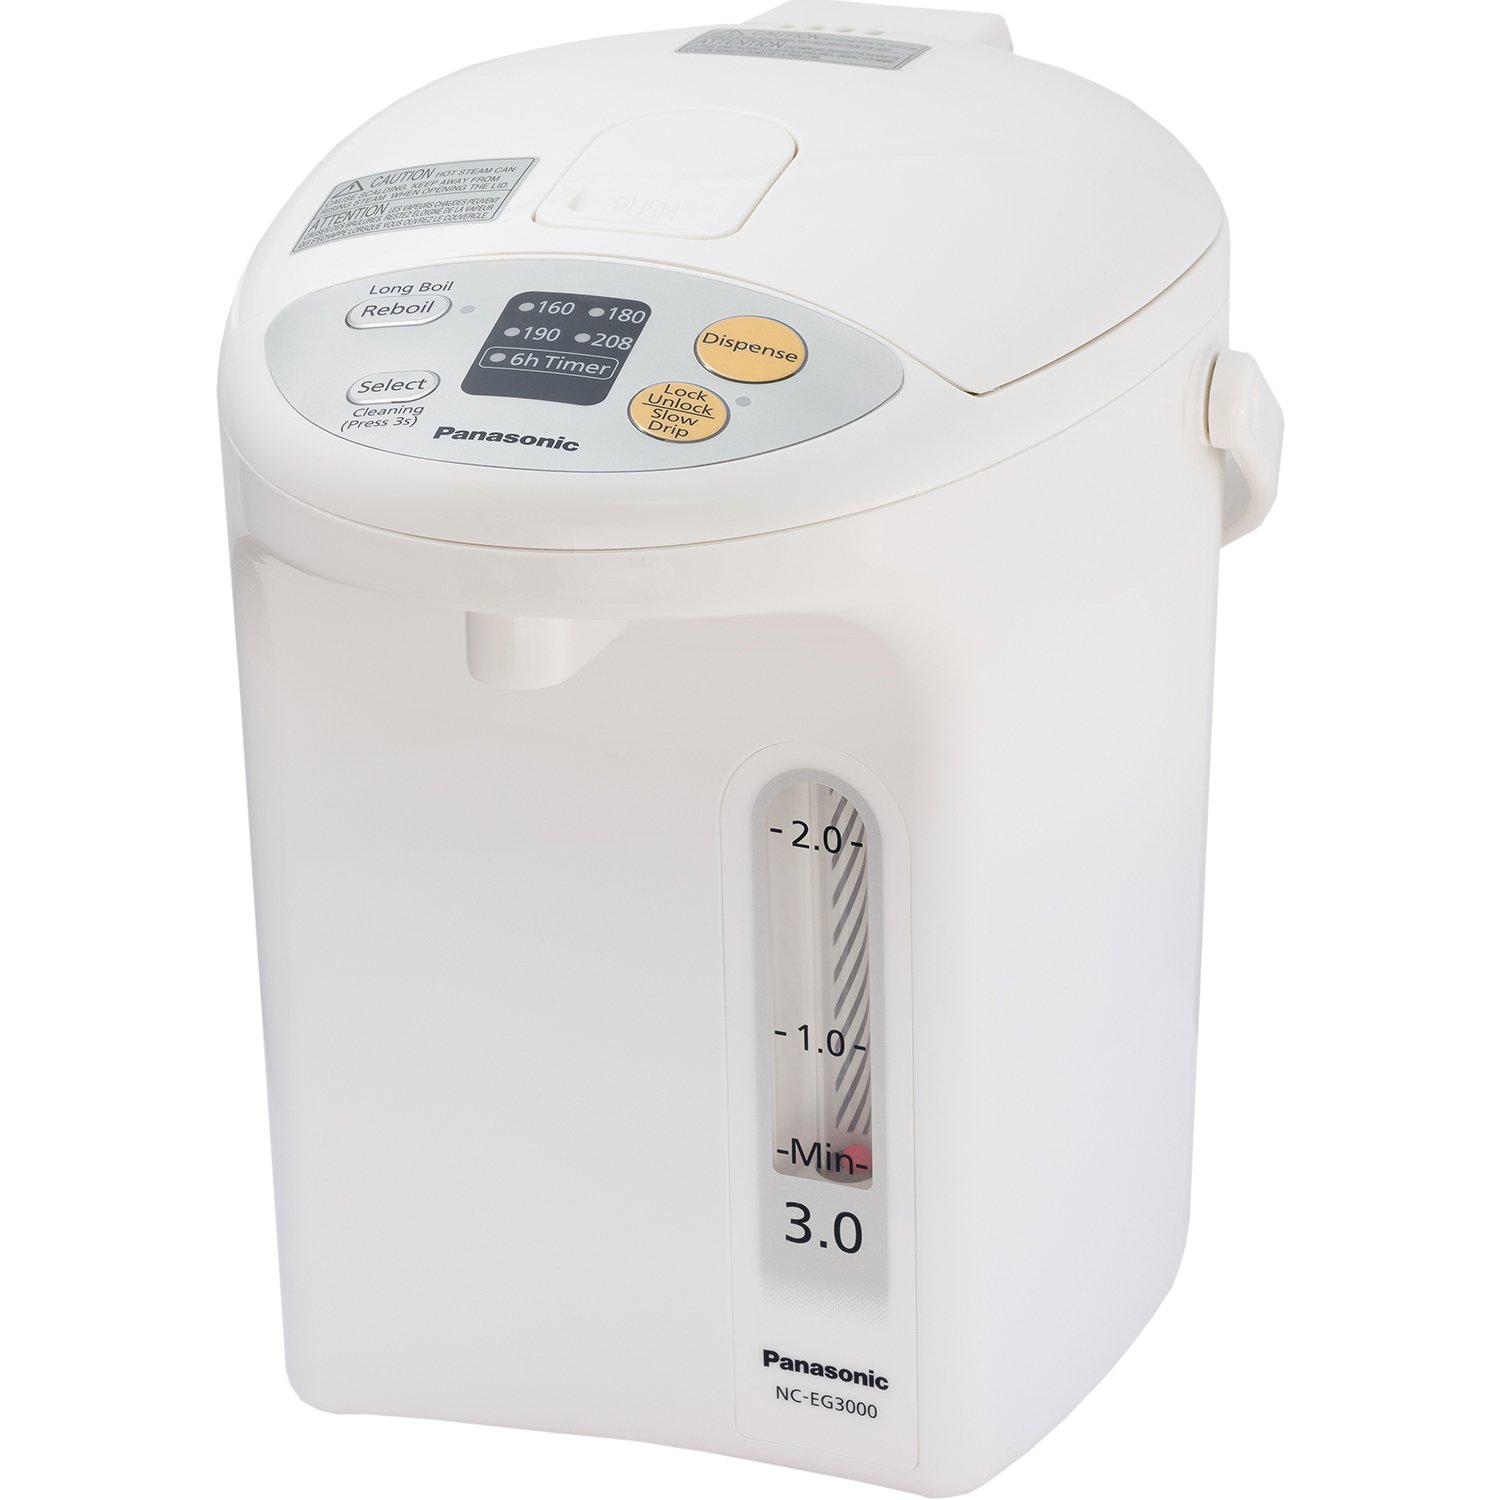 Panasonic Electric Thermo Pot Hot Water Boiler Dispenser NC-EG3000, Slow-Drip Mode for Coffee, Ideal for Tea, Hot Cocoa, Soups and Baby Food, Four Temperature Settings, 3.2 Quarts (3.0L), 700W, White